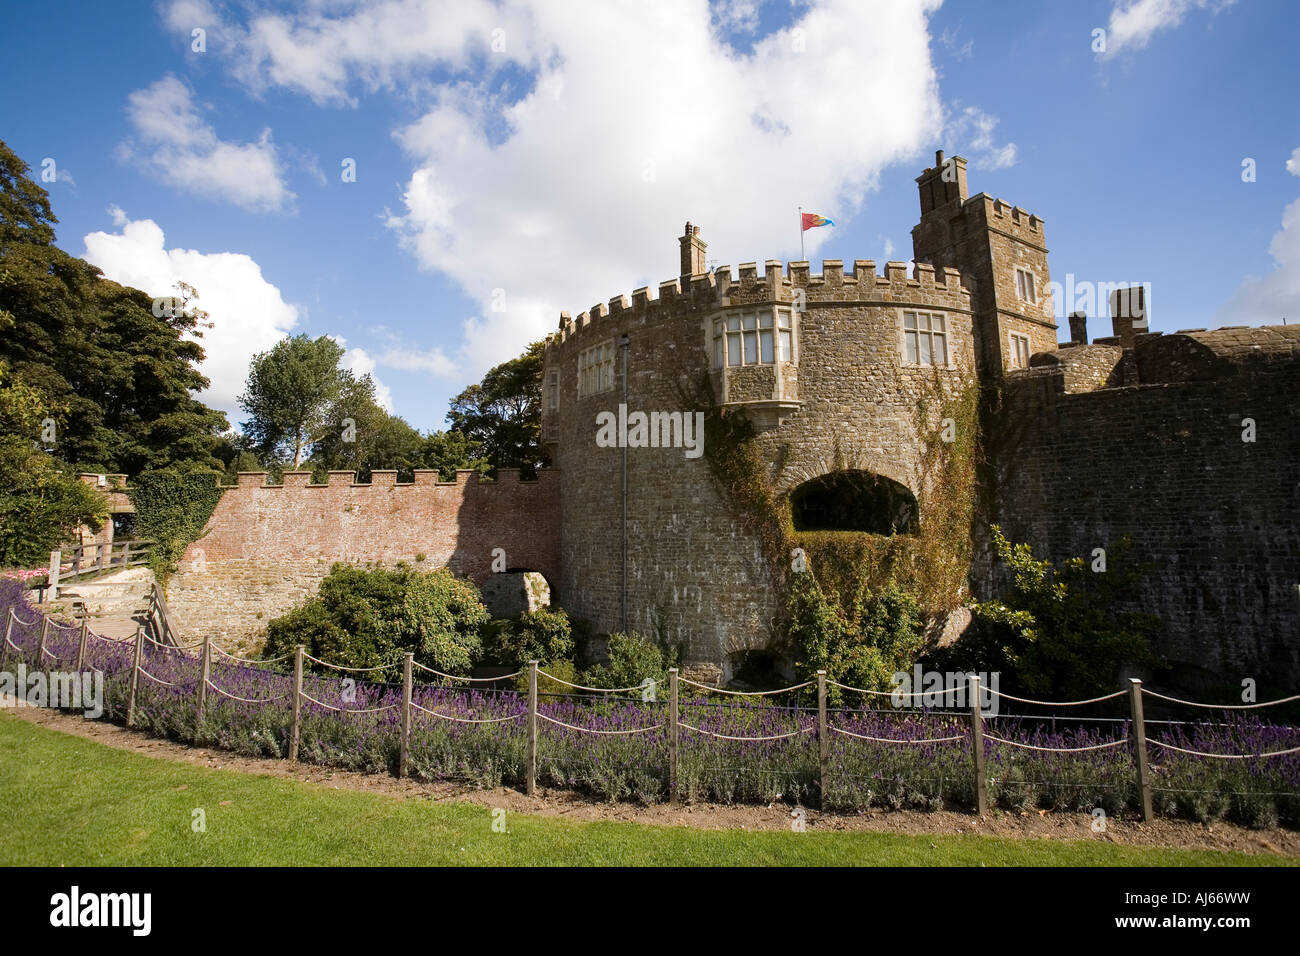 UK Kent Deal Walmer Castle from the gardens - Stock Image